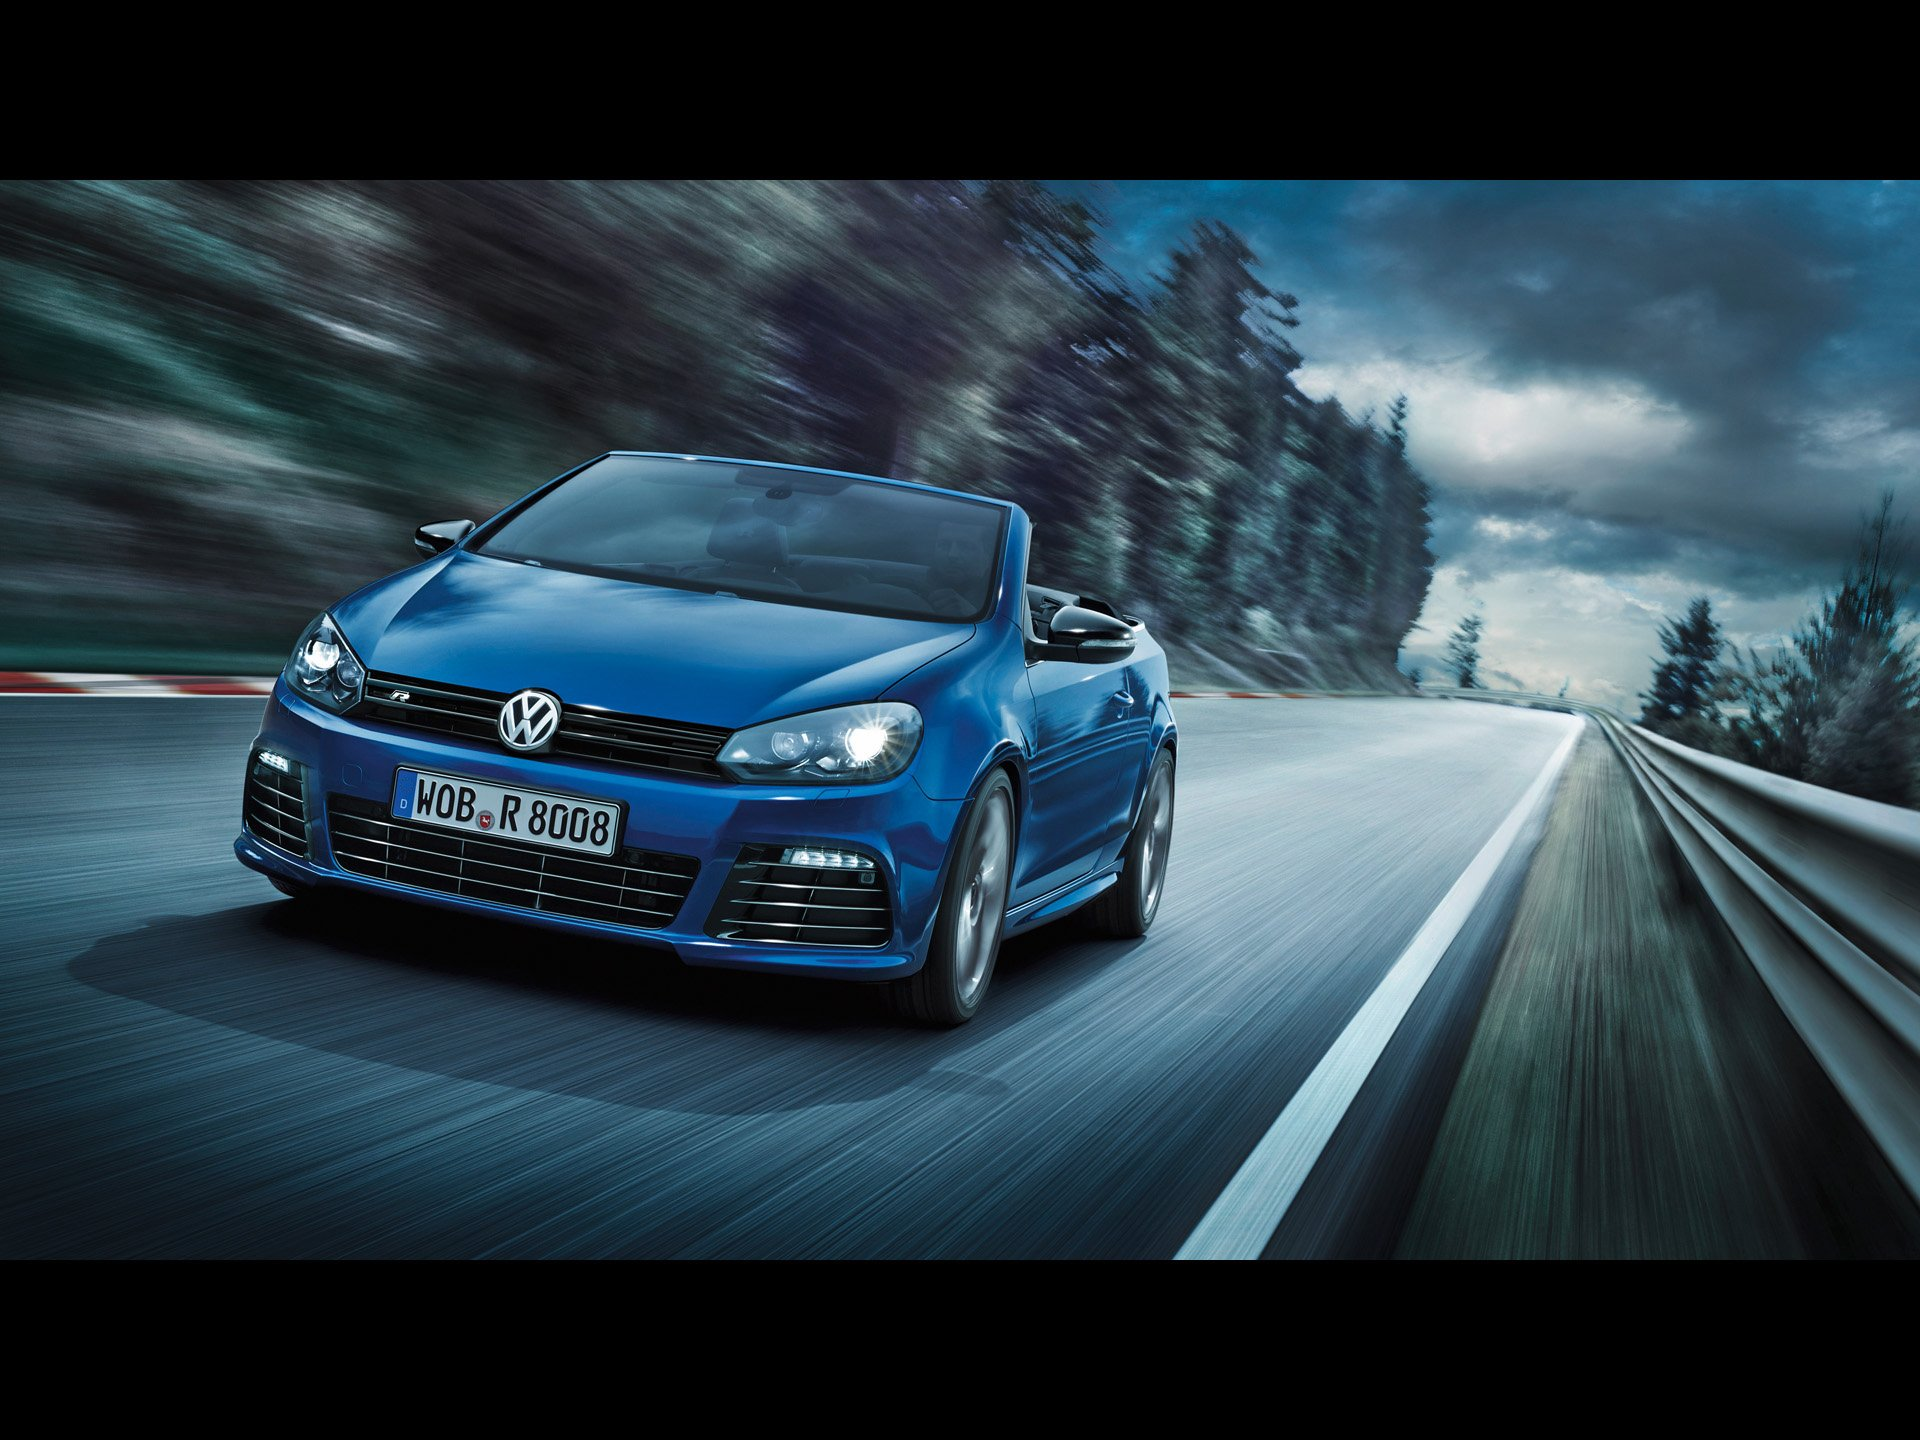 Devil 16 Car Wallpaper 2013 Volkswagen Golf R Cabriolet Hd Duvar Kağıdı Arka